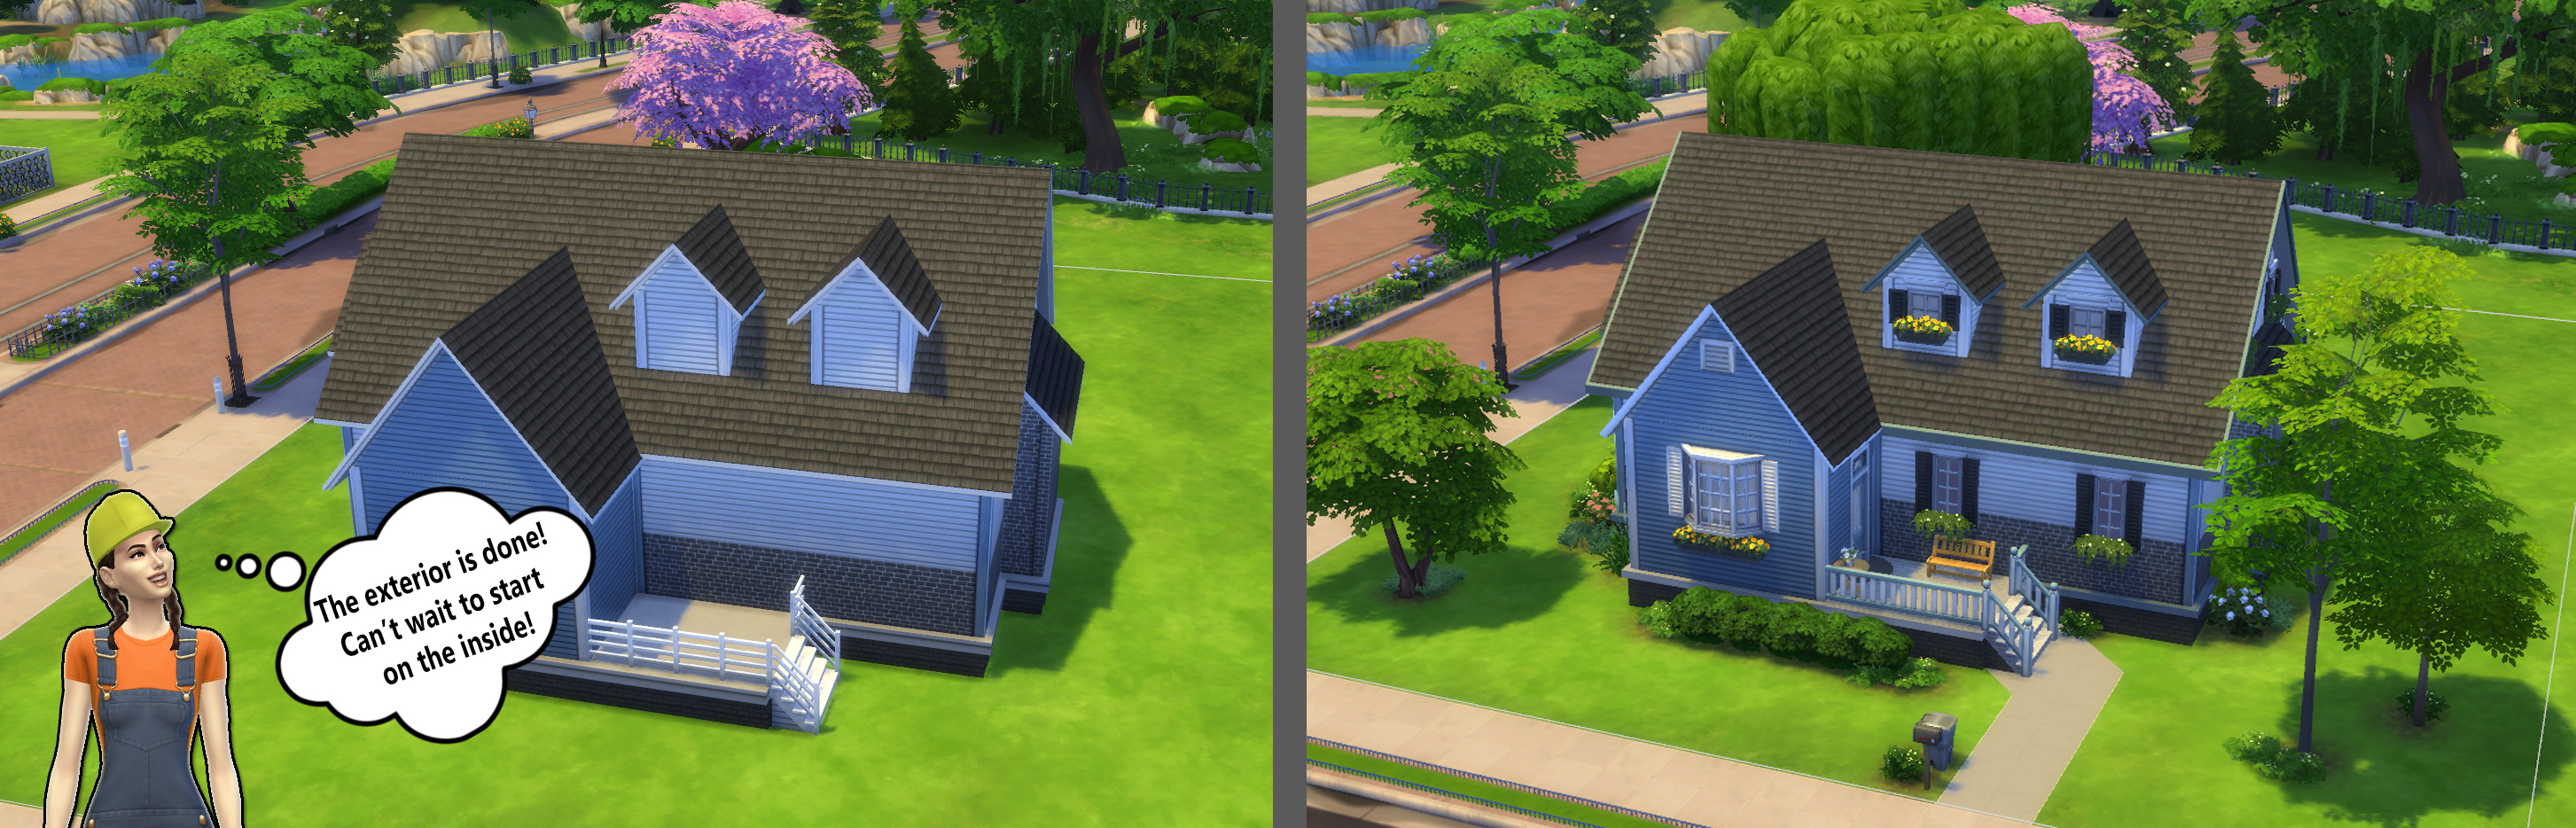 Building for beginners in the sims 4 landscaping plantart1 sisterspd